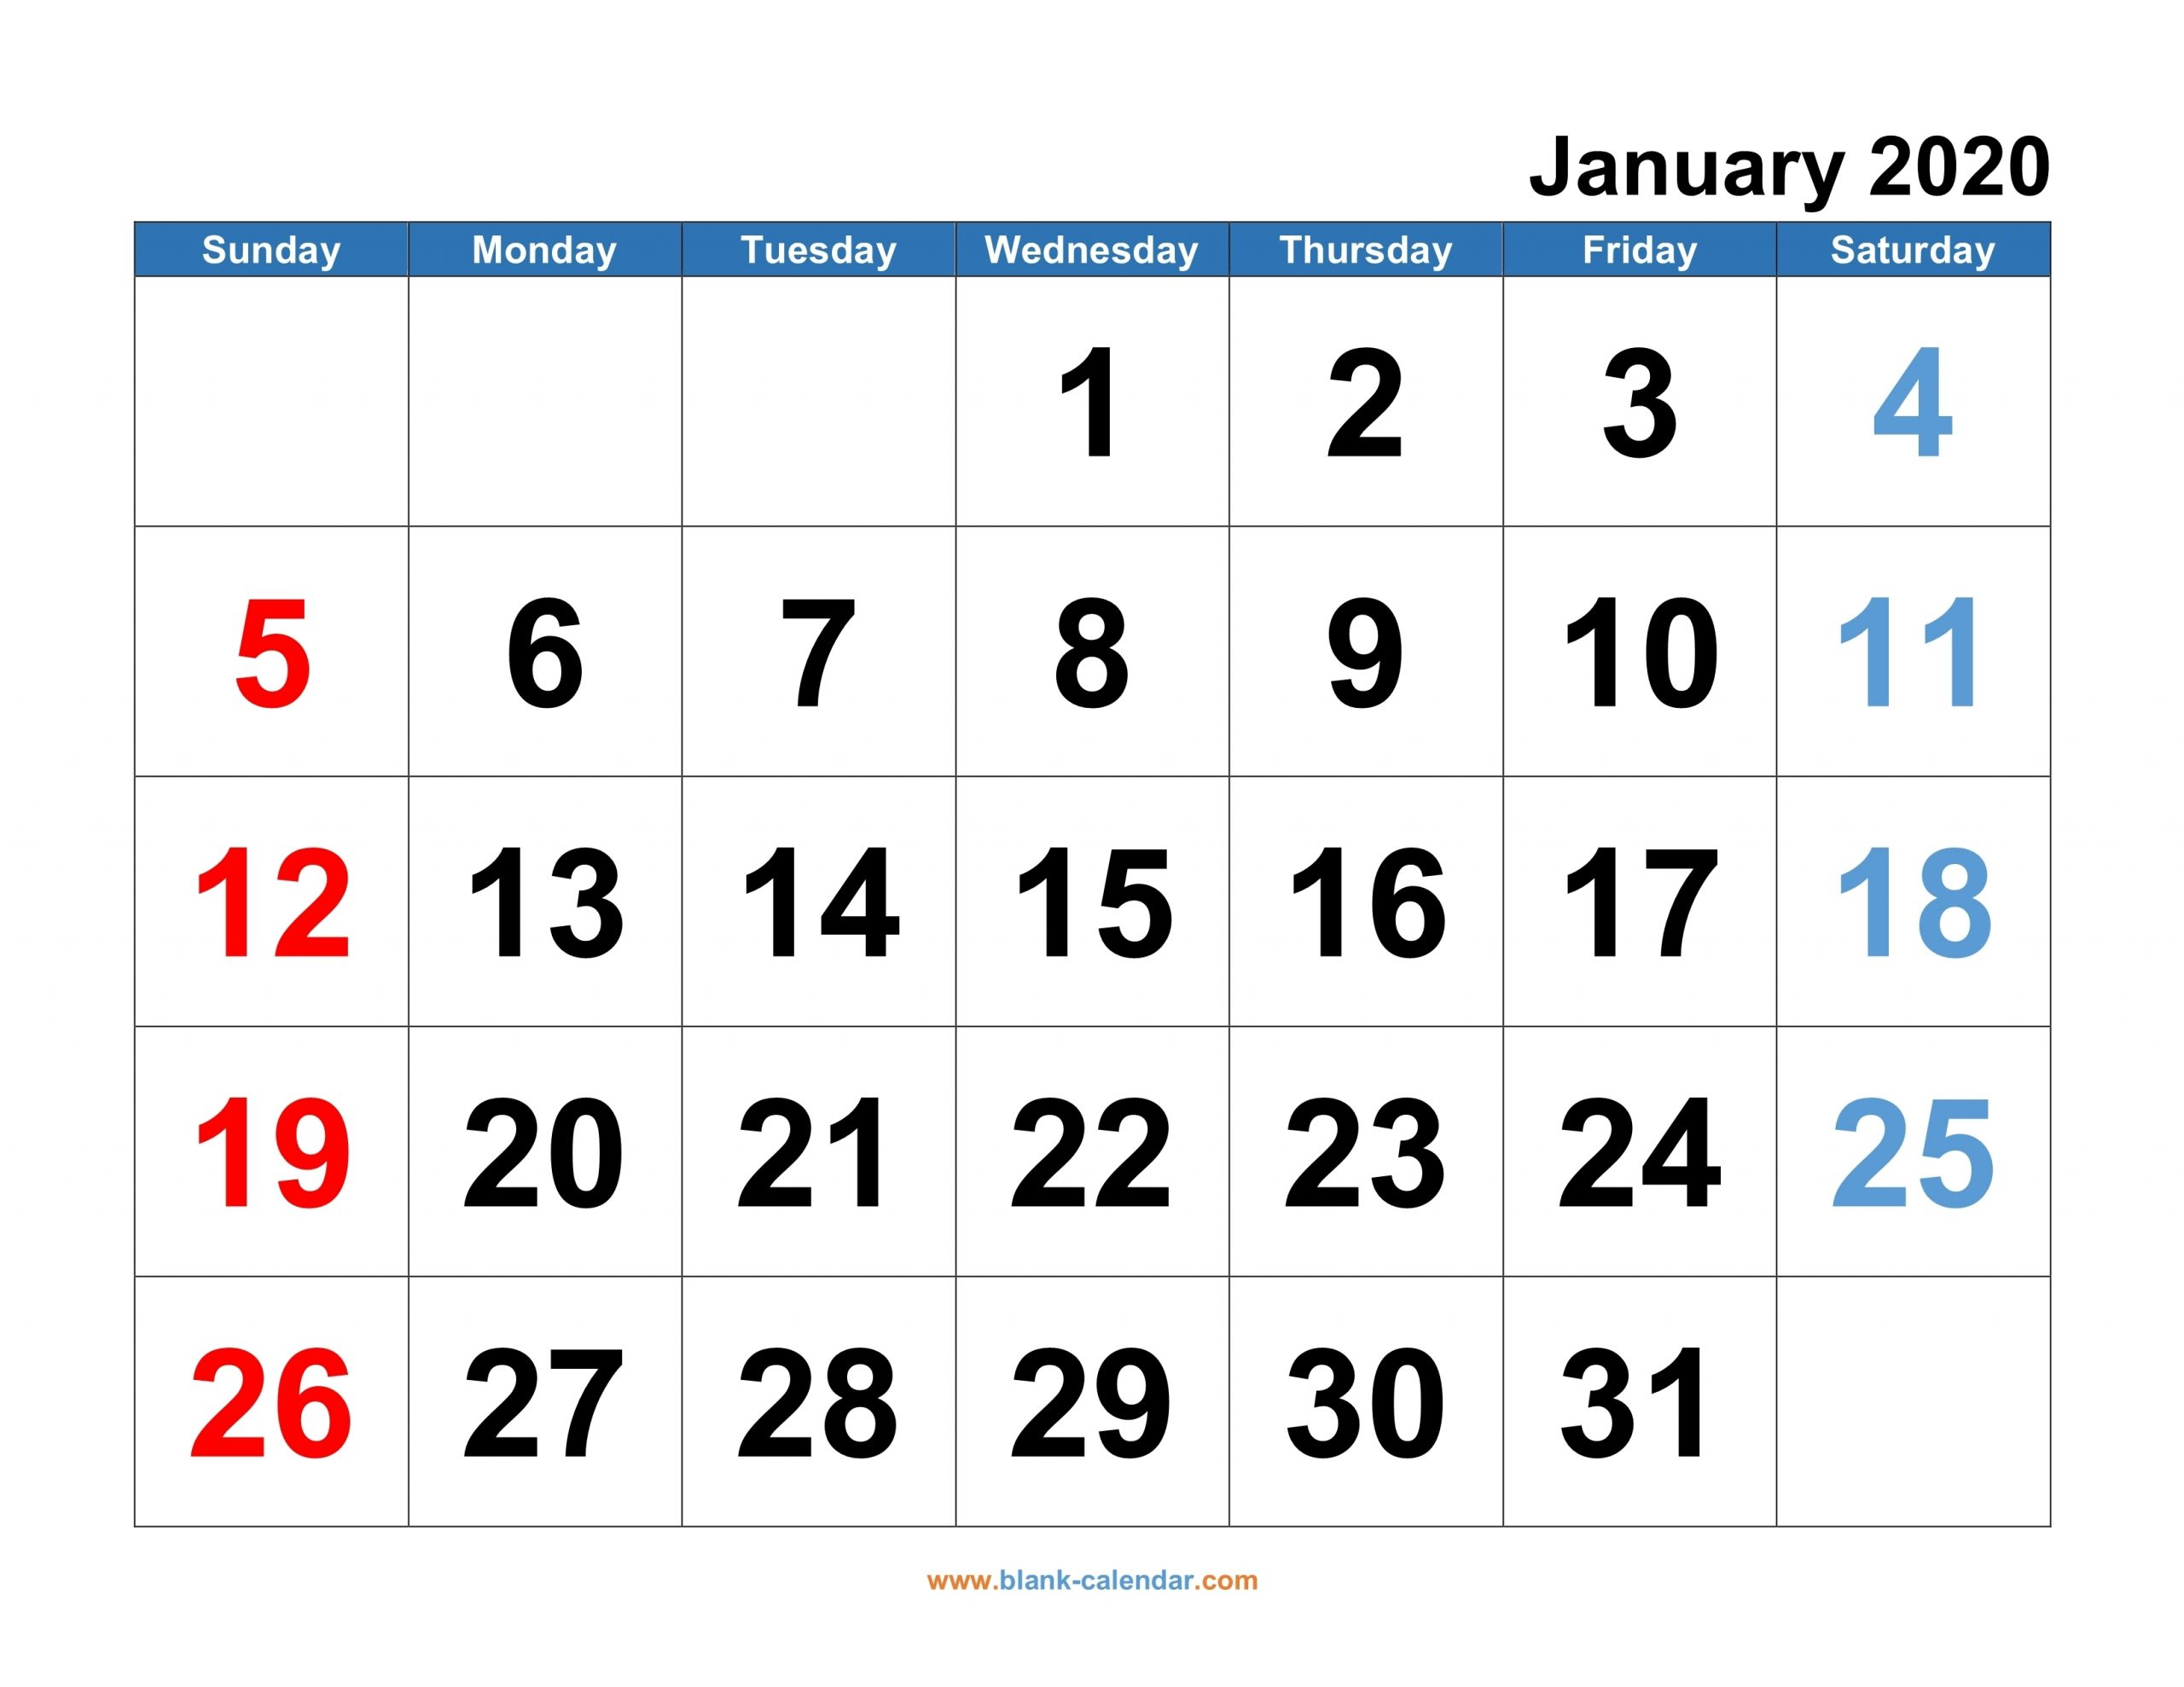 Monthly Calendar 2020 | Free Download, Editable And Printable regarding 2020 Calendar Printable Free Word Monthly